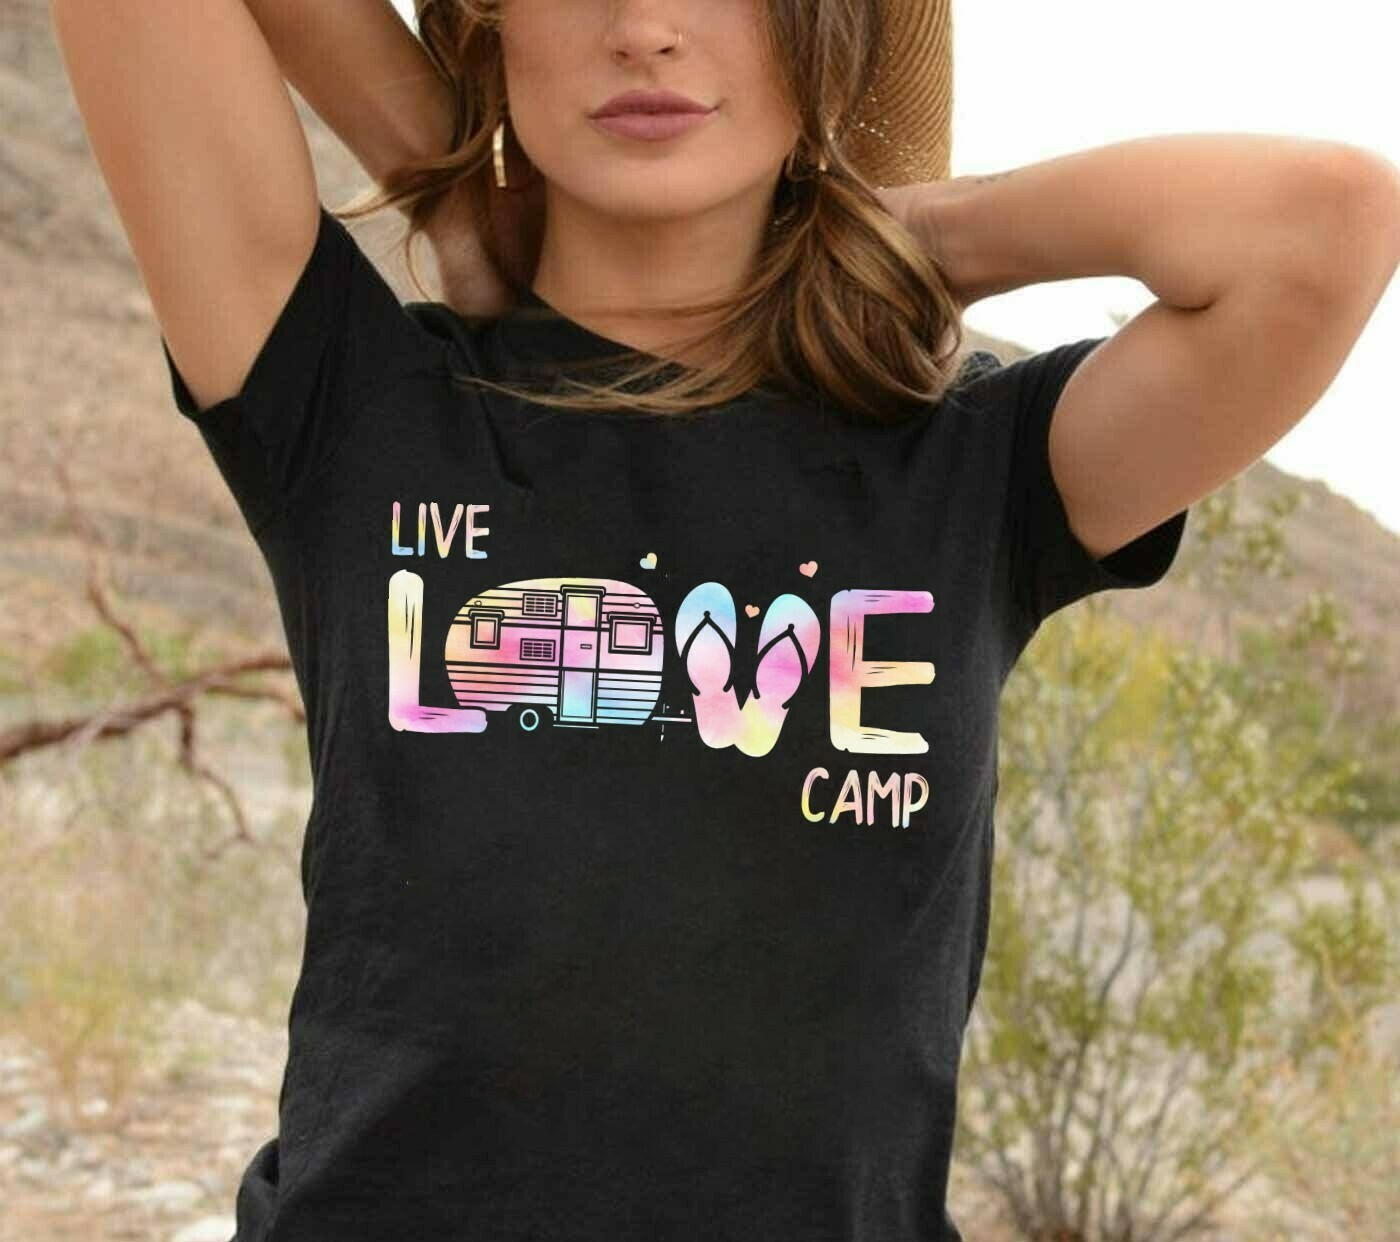 Live love camp Happy camper glamping summer camp travel nature outdoor adventure youth road trip gift for teen Family T-Shirt Hoodie Sweatshirt Sweater Tee Kids Youth Gifts Jolly Family Gifts